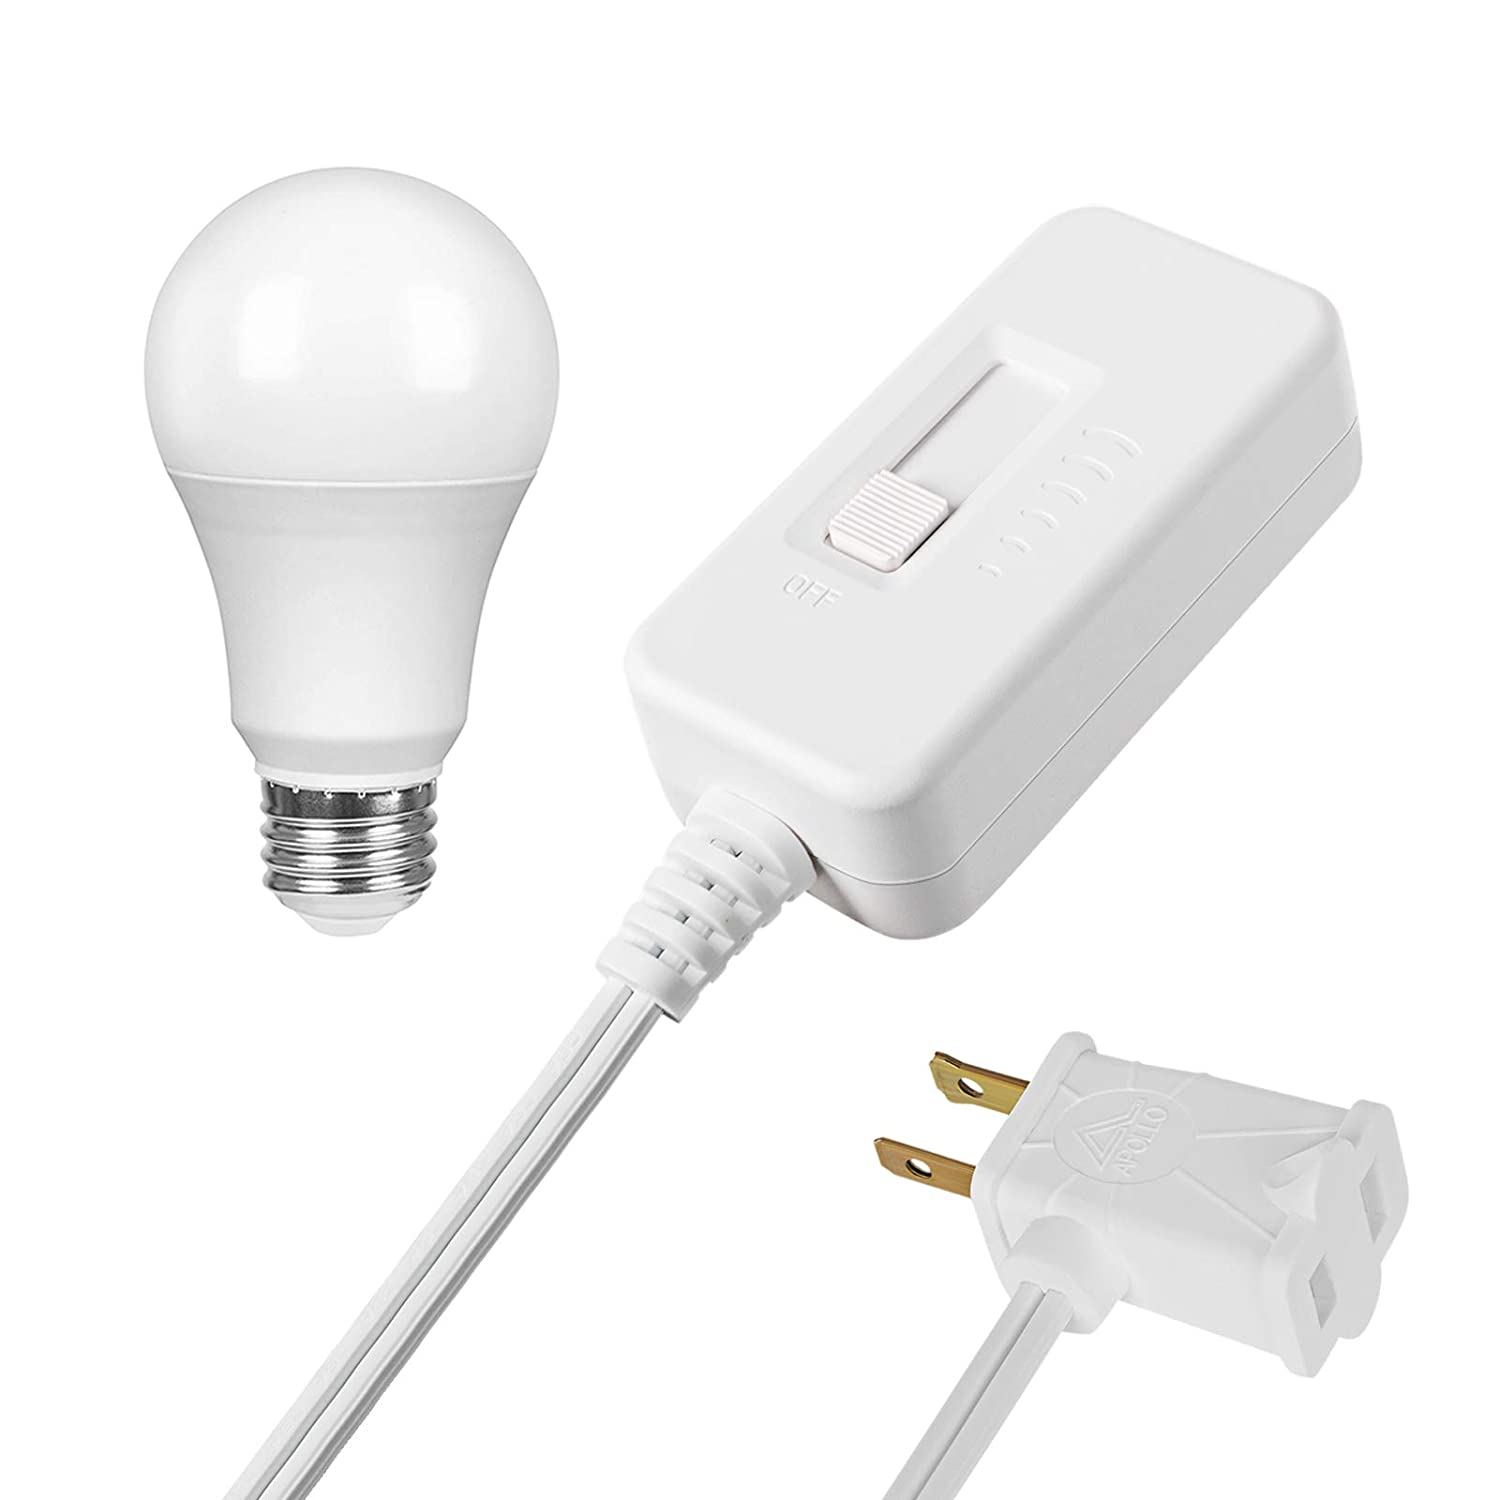 DEWENWILS Table Top Inline Dimmer Switch and Warm White Dimmable LED Light Bulb Set for Lamp, Full Range Slide Control, 6.6 ft Extension Cord, UL Listed, White